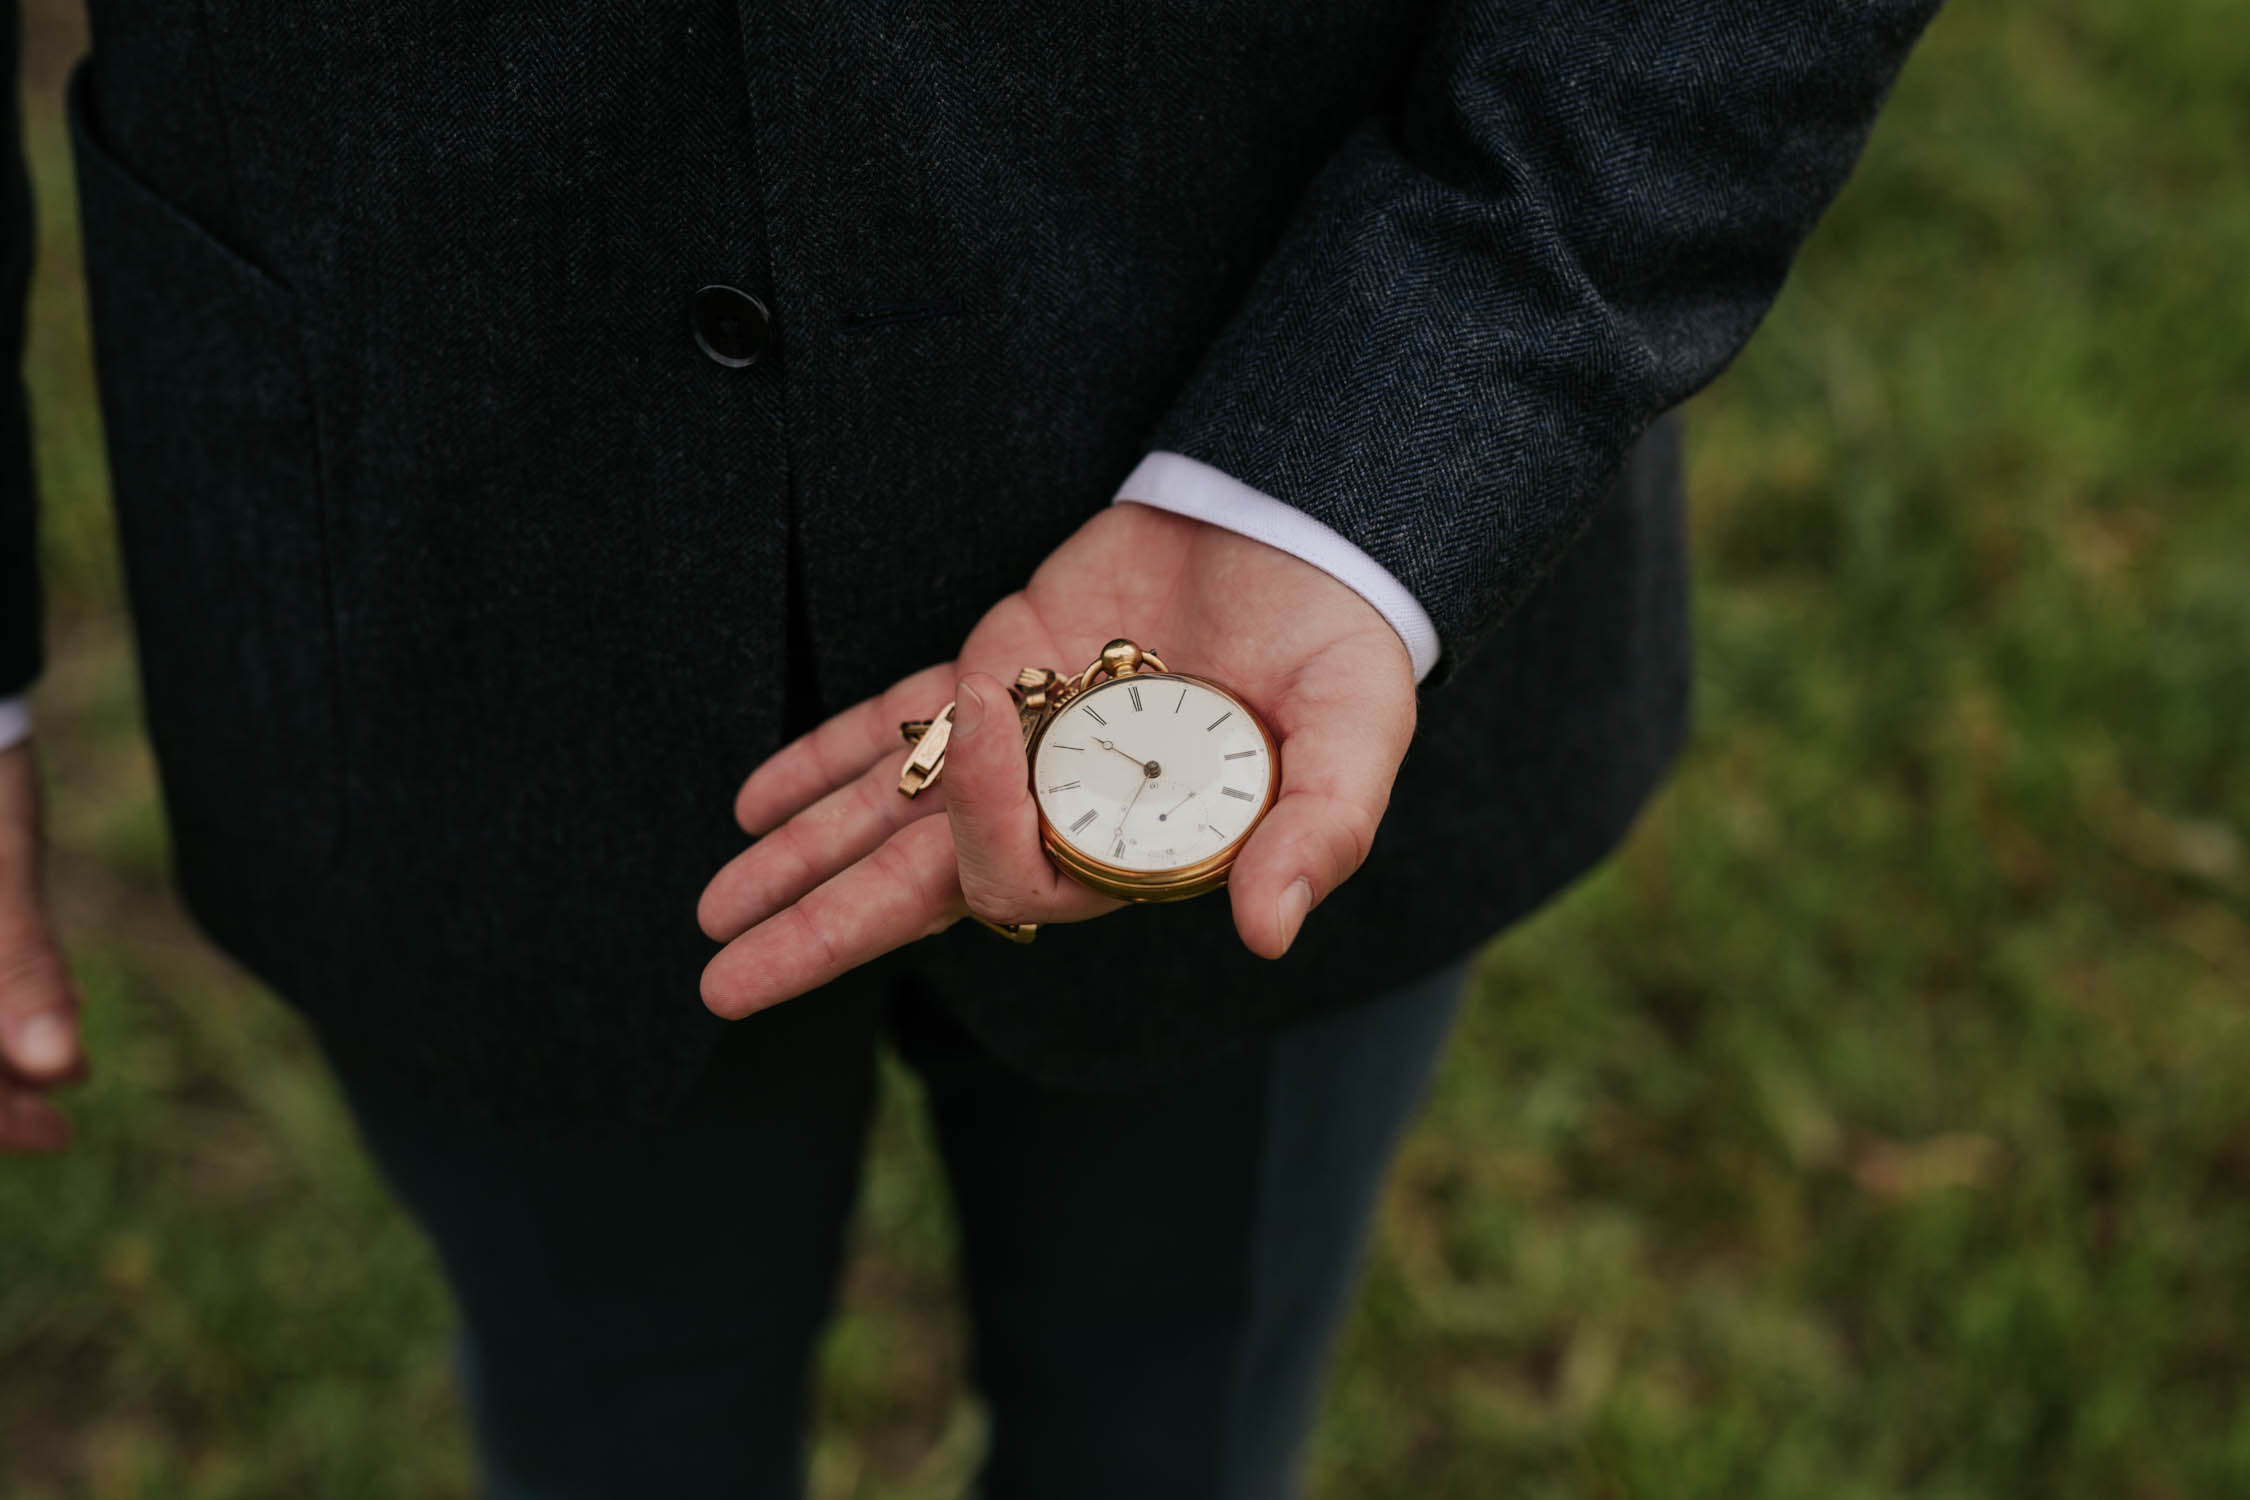 Groom looking at watch before his bride walks down the aisle. He is holding an old pocket watch. His grandfather's - a family heirloom.